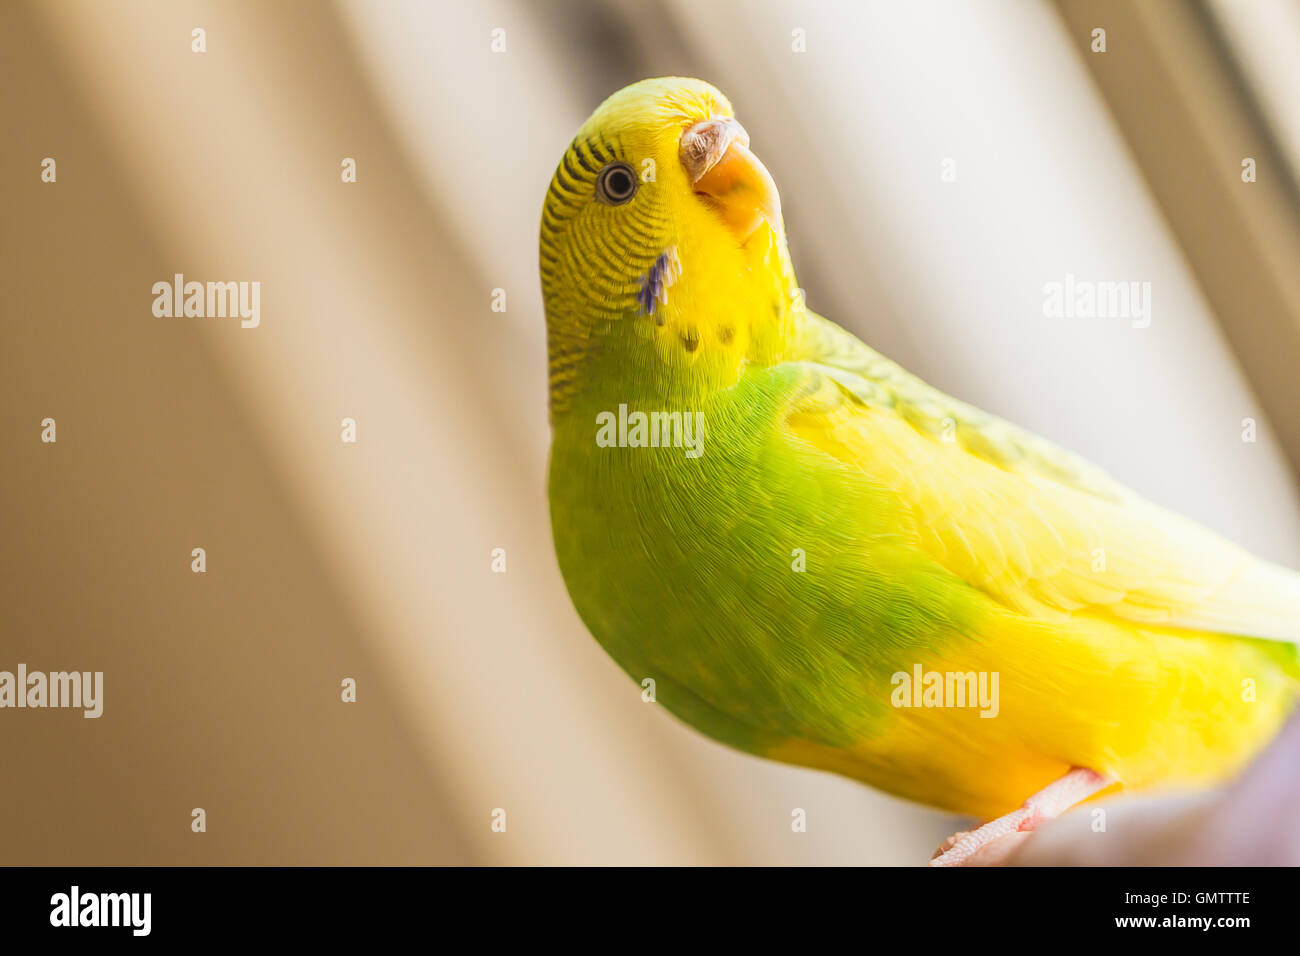 Green and yellow pied budgerigar parakeet sitting on a finger looking our of a window. She is lit with natural light - Stock Image